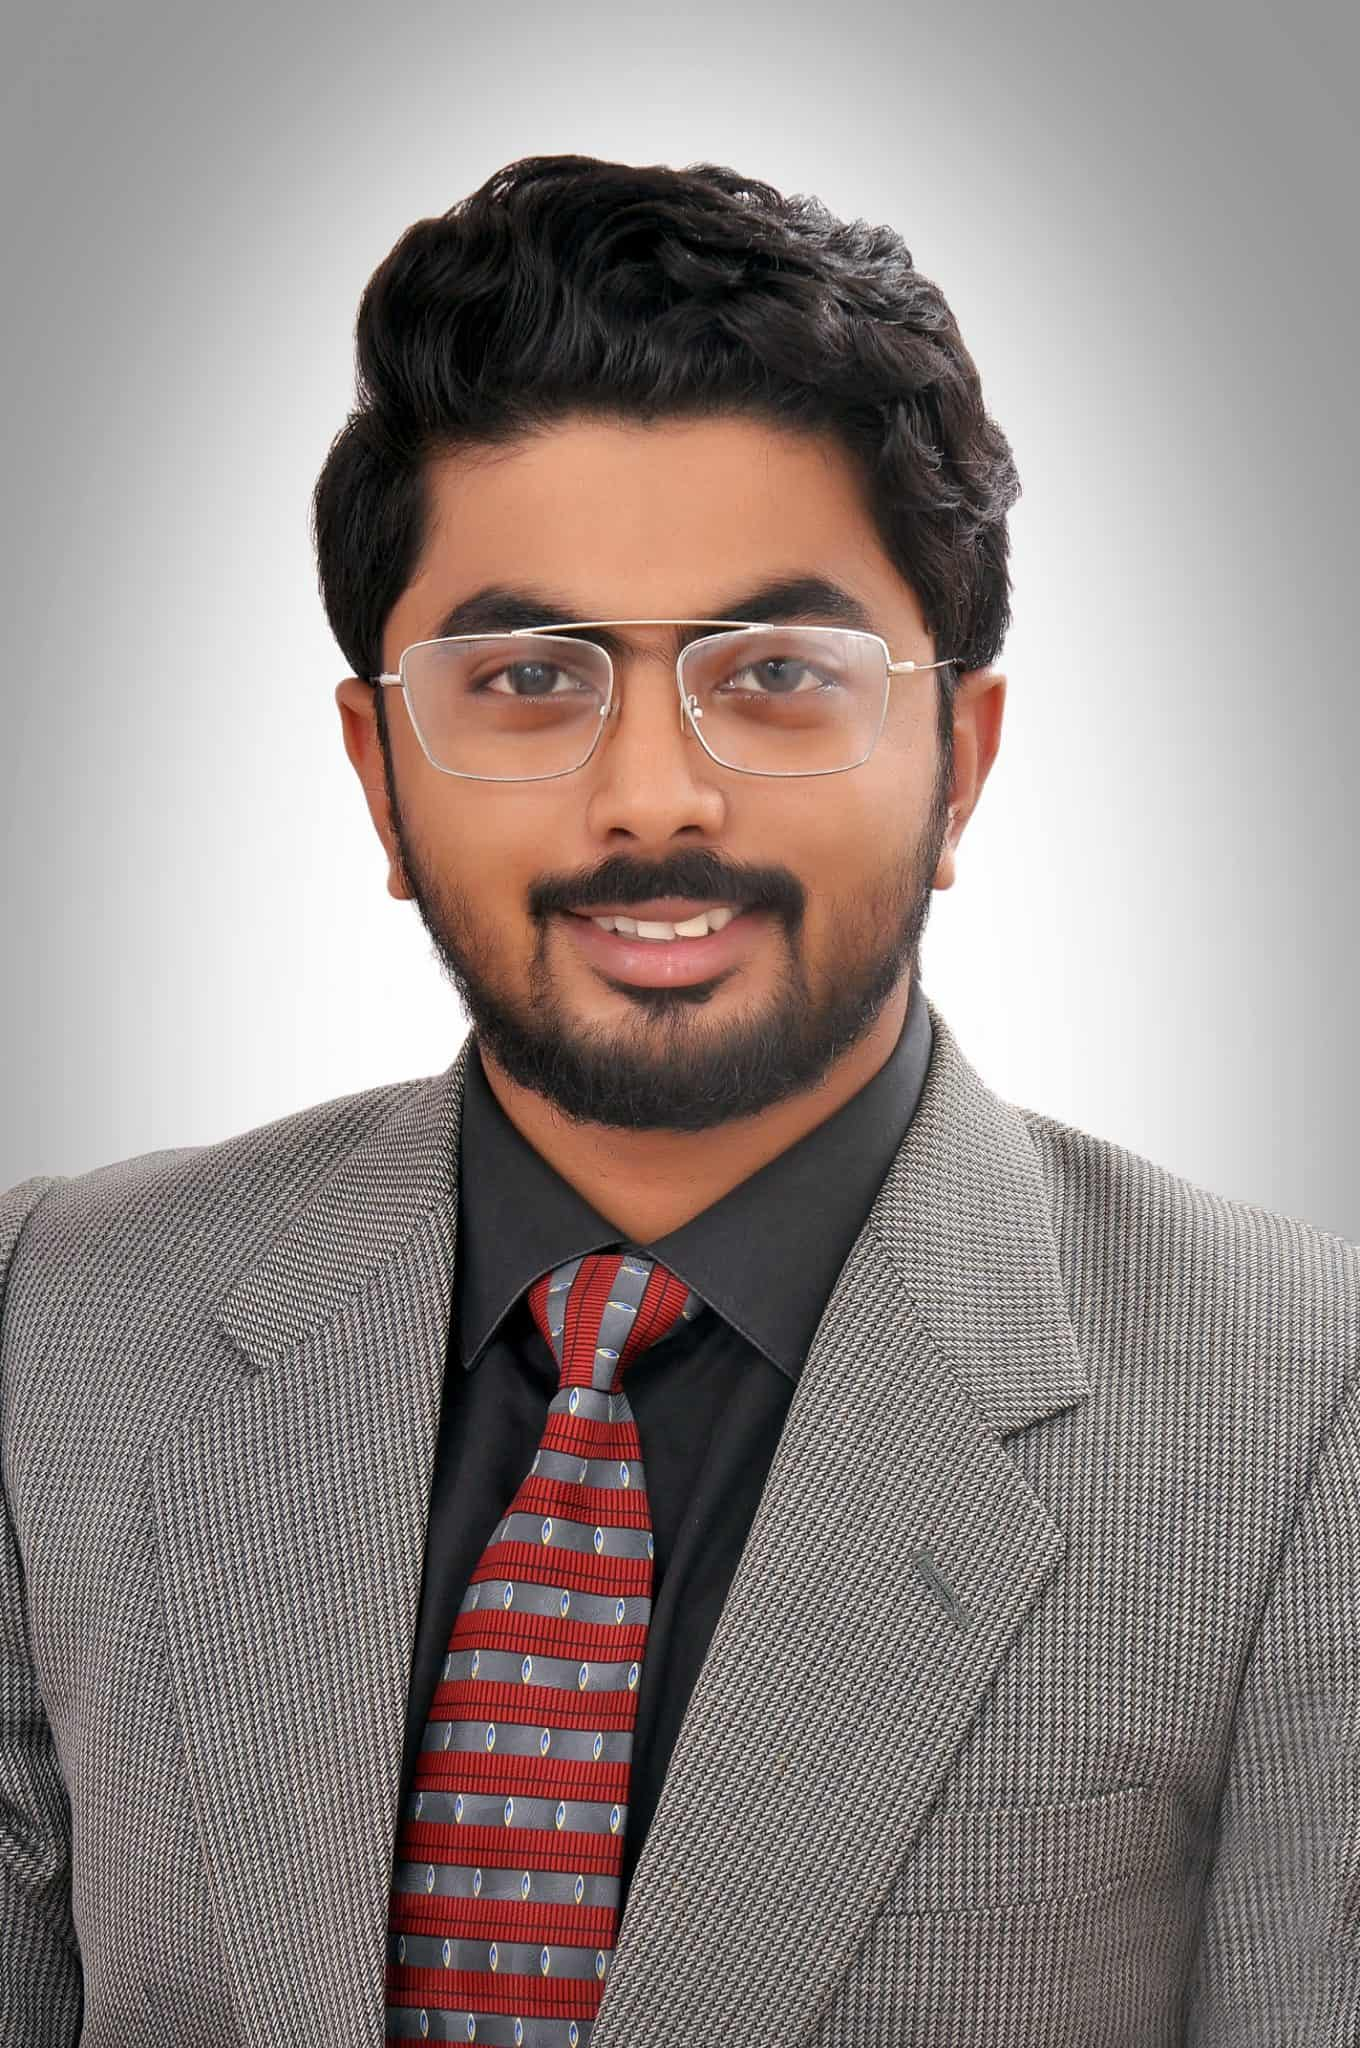 IN CONVERSATION WITH: ADVOCATE SHUBHAM BORKAR (SENIOR ASSOCIATE AT KHURANA AND KHURANA ADVOCATES & IP ATTORNEYS): ON LEGAL RESEARCH WRITING